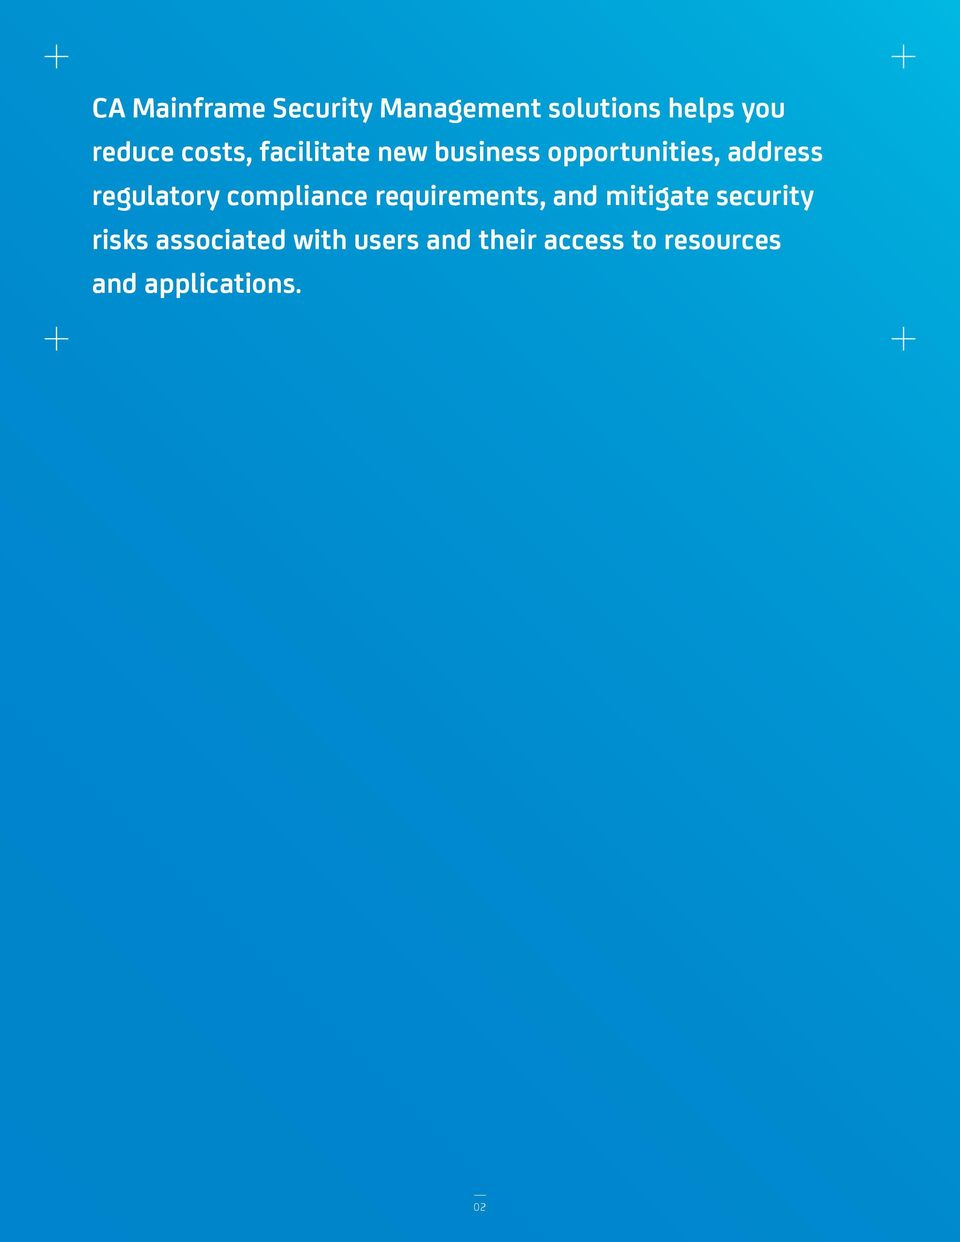 regulatory compliance requirements, and mitigate security